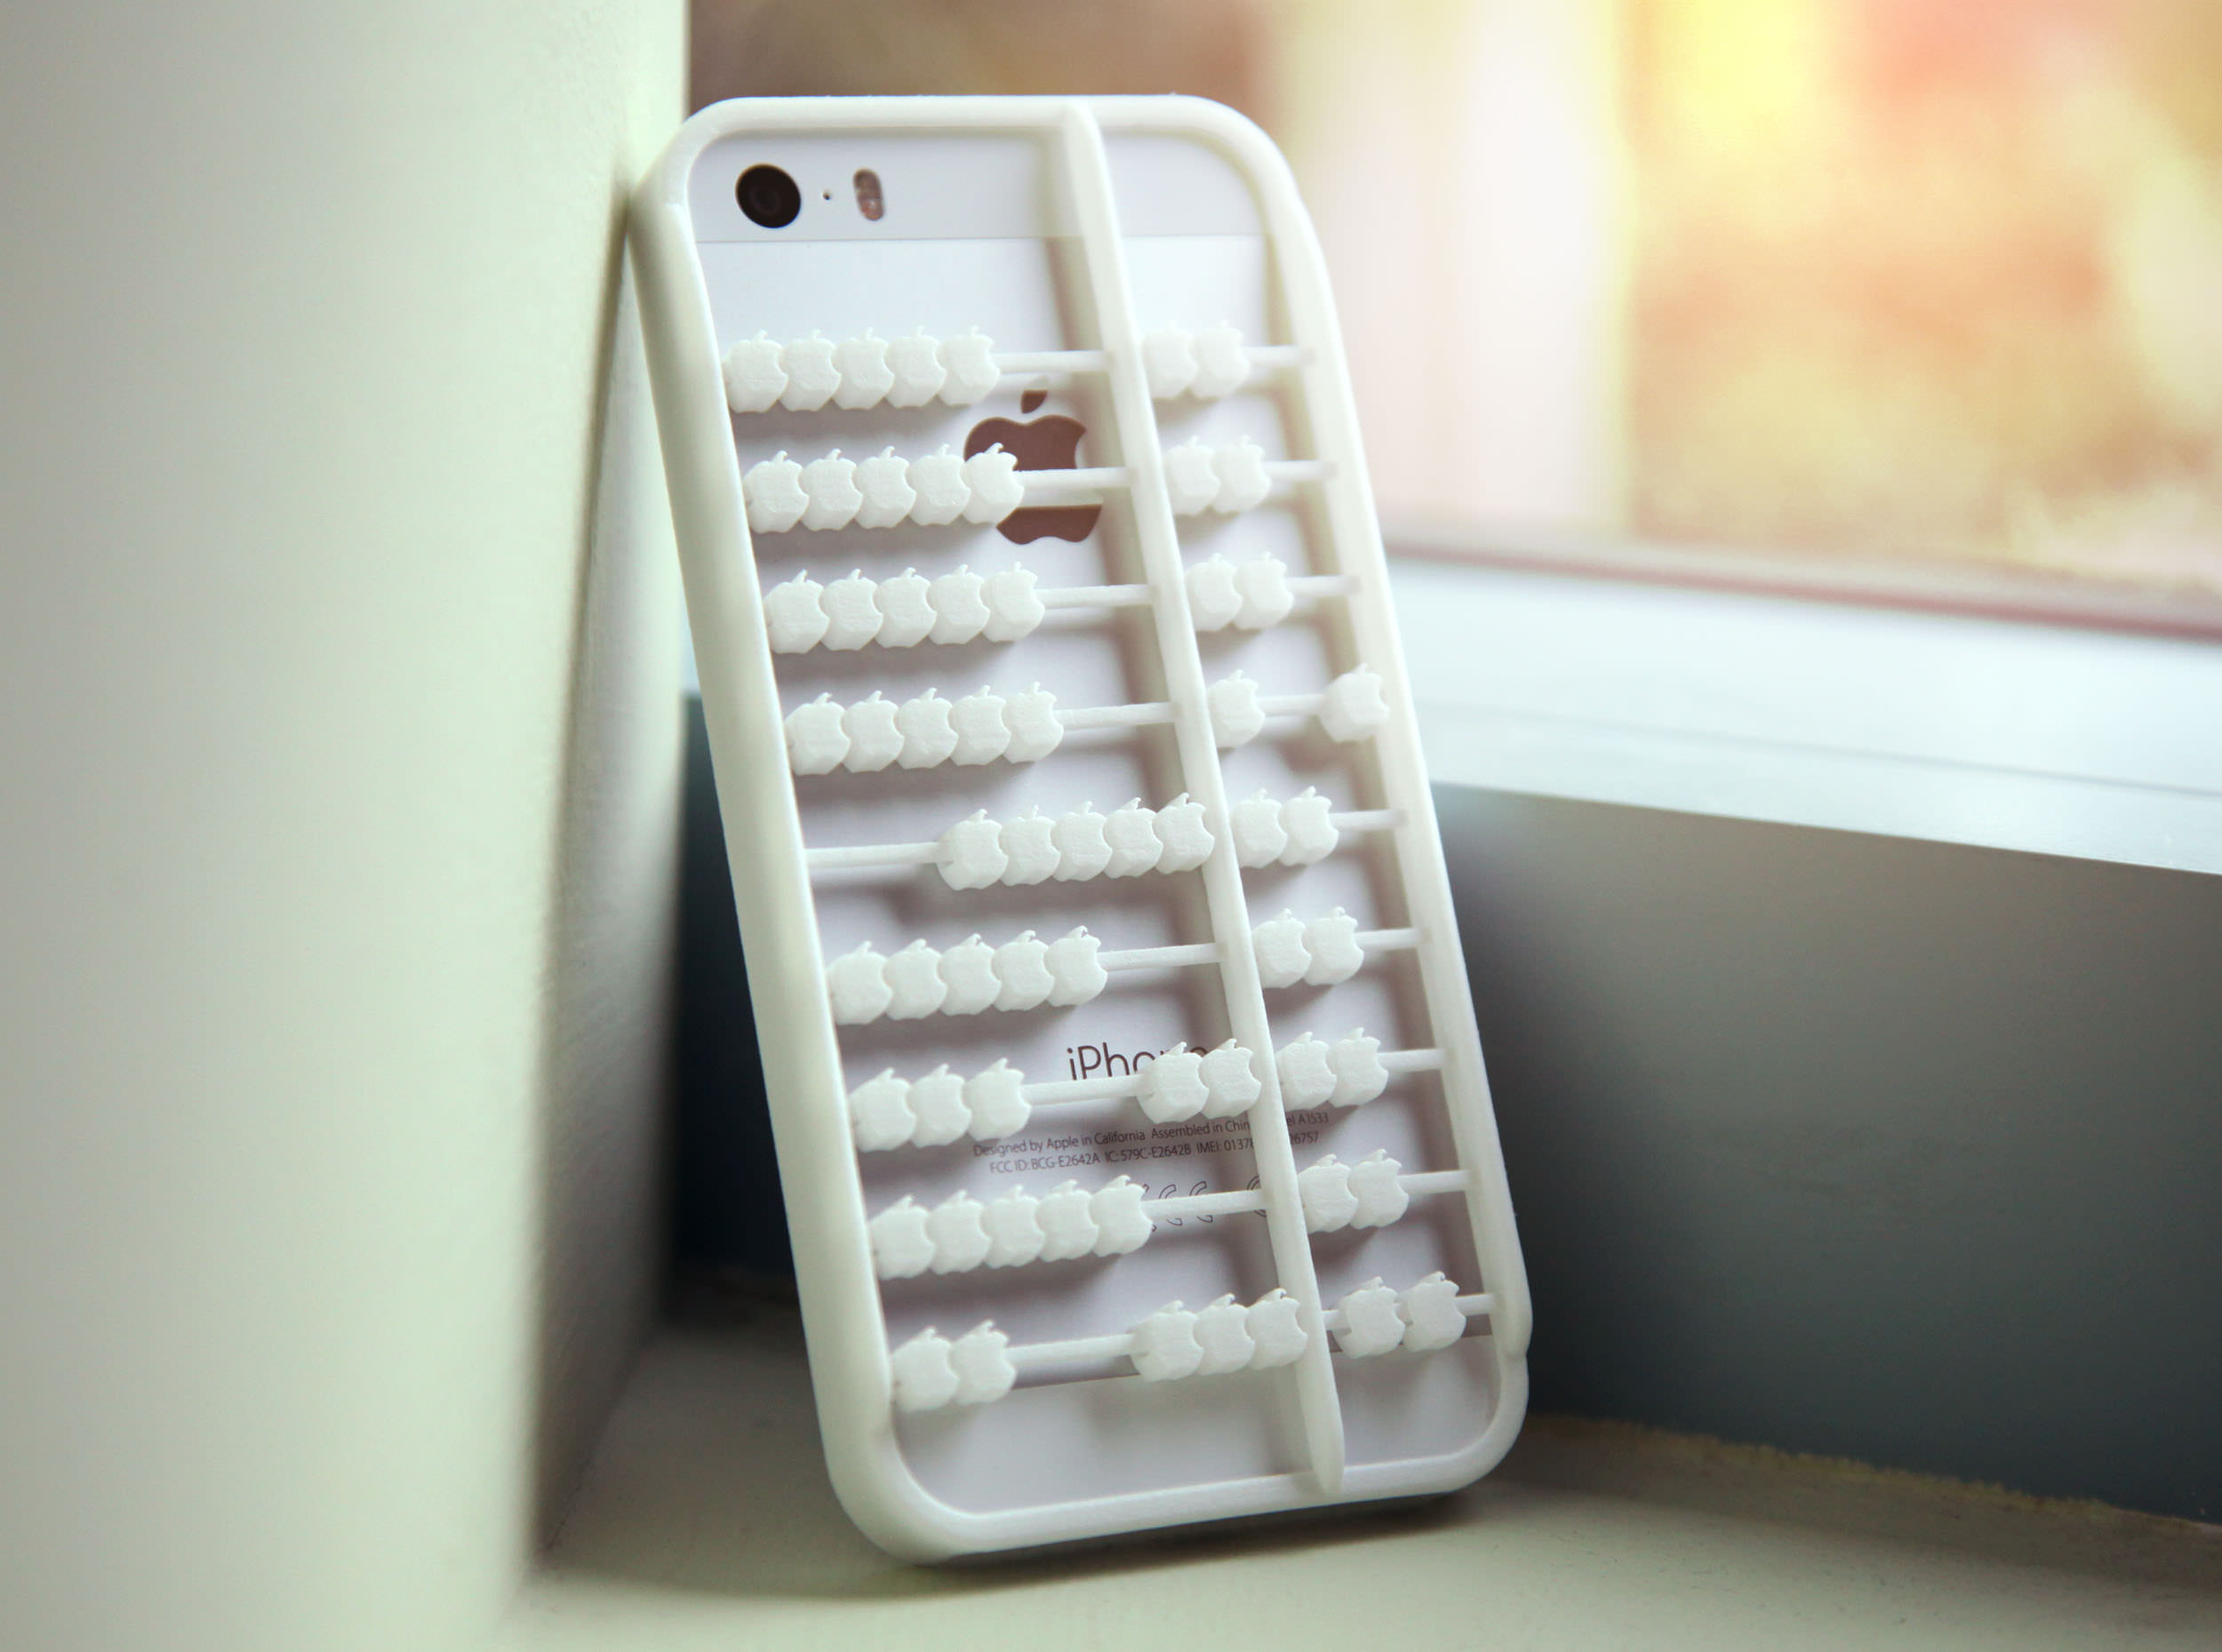 Abacus iPhone 5 5s Case 3D Model 3D printable .obj - CGTrader.com